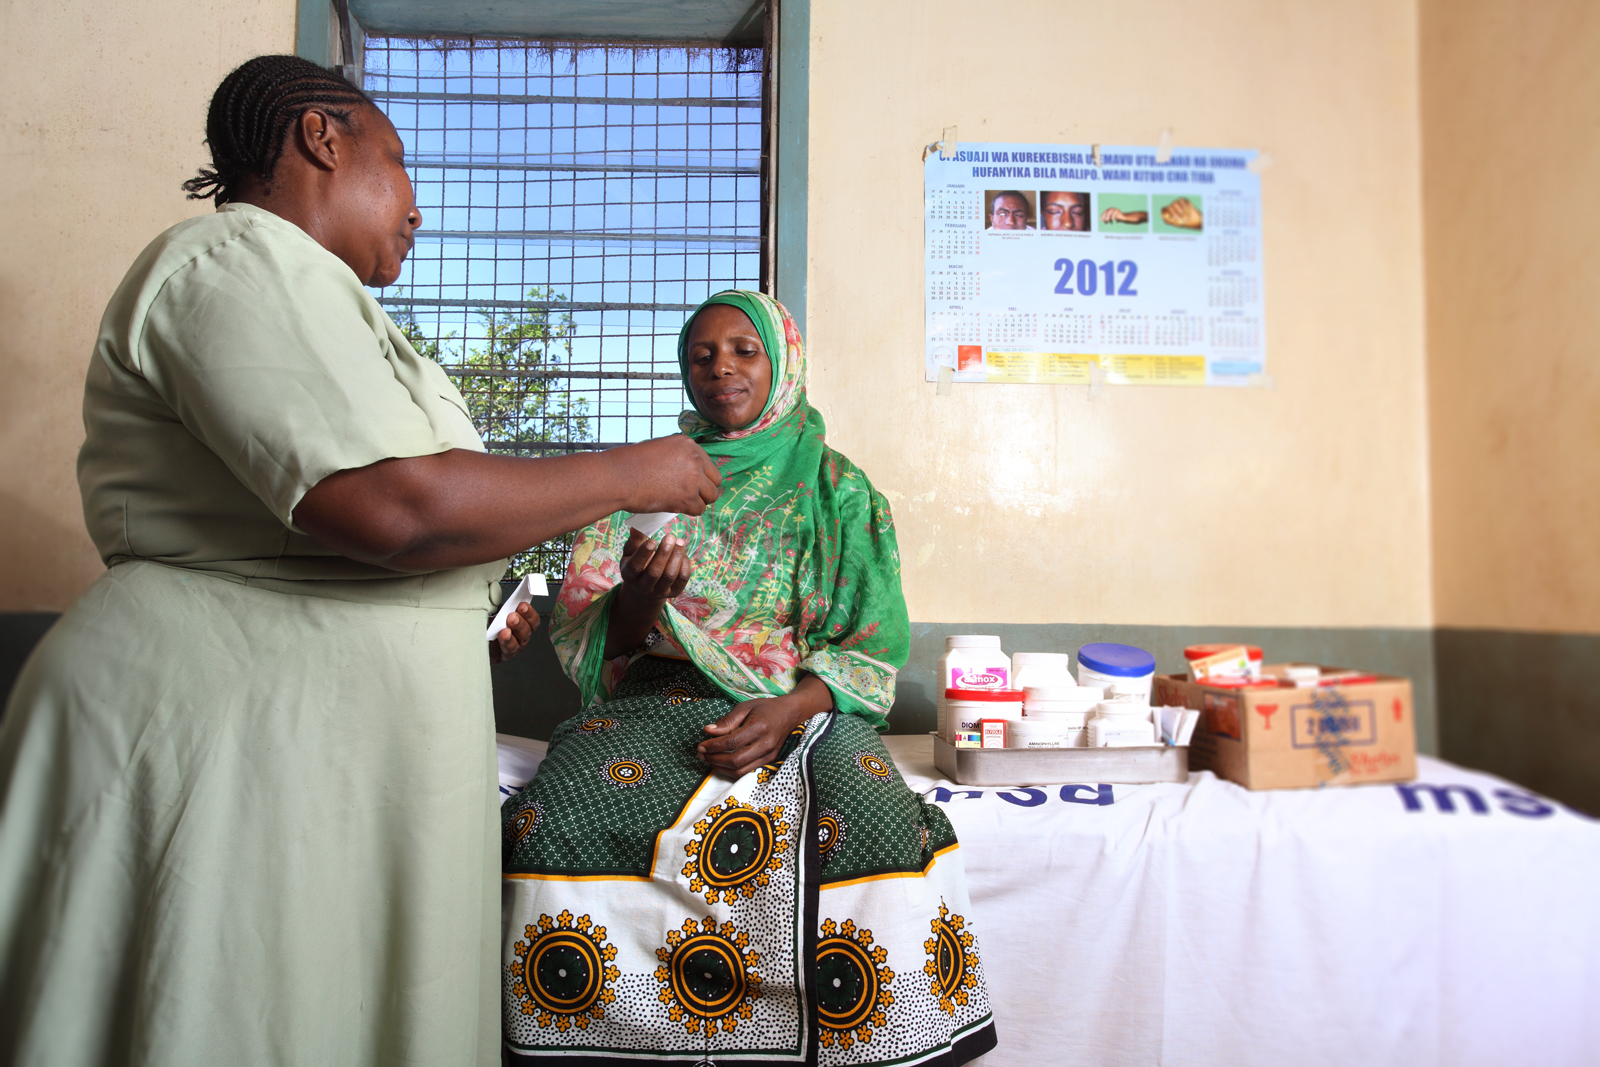 A nurse from a clinic in Dar es Salam District, Tanzania, dispenses medicine to a patient, Optuna John. Since Project Last Mile launched in 2010, Medical Stores Department's distribution system has expanded to include delivery to more than 5,500 health facilities. Previously, Medical Stores Department delivered to approximately 150 district warehouses, thus losing sight of the last mile. Now, people like Optuna can receive medical care that was not readily accessible in the past. (Photo: Business Wire)